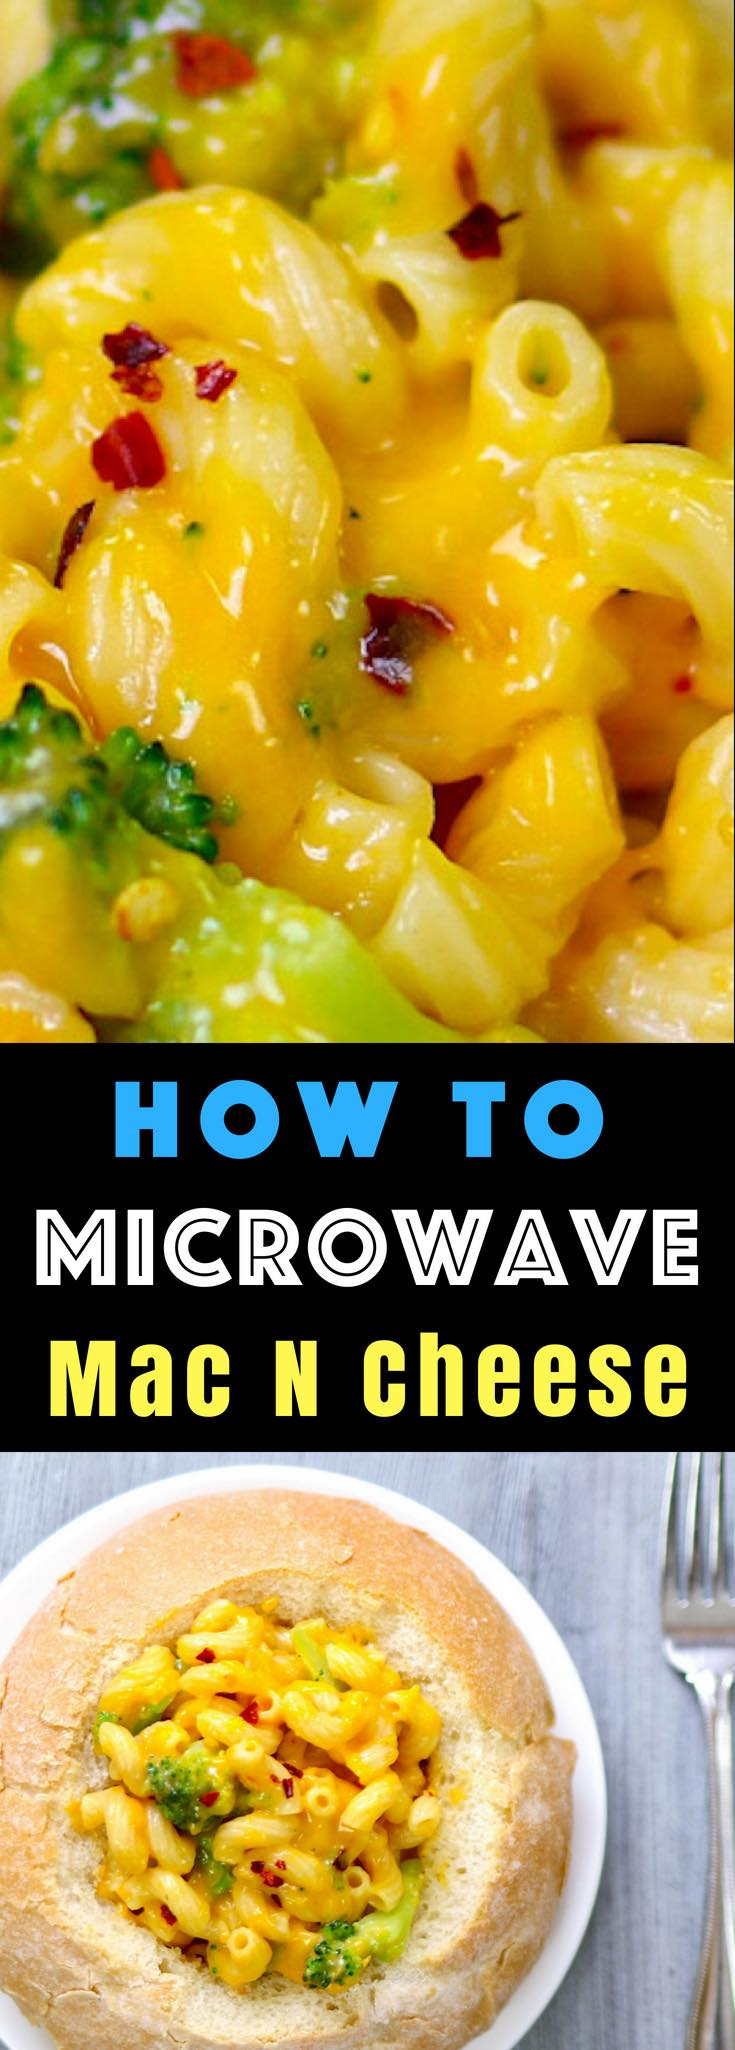 MicrowaveMac and Cheese– rich and creamy mac and cheese cooked in microwave from scratch, ready in 15 minutes. A total game changer! All you need is a few simple ingredients: Macaroni pasta, salt, milk, garlic powder and cheddar cheese. Quick, easy and cooked in one bowl. Say goodbye to the dried macaroni boxes! #MicrowaveMacAndCheese #MacNcheese